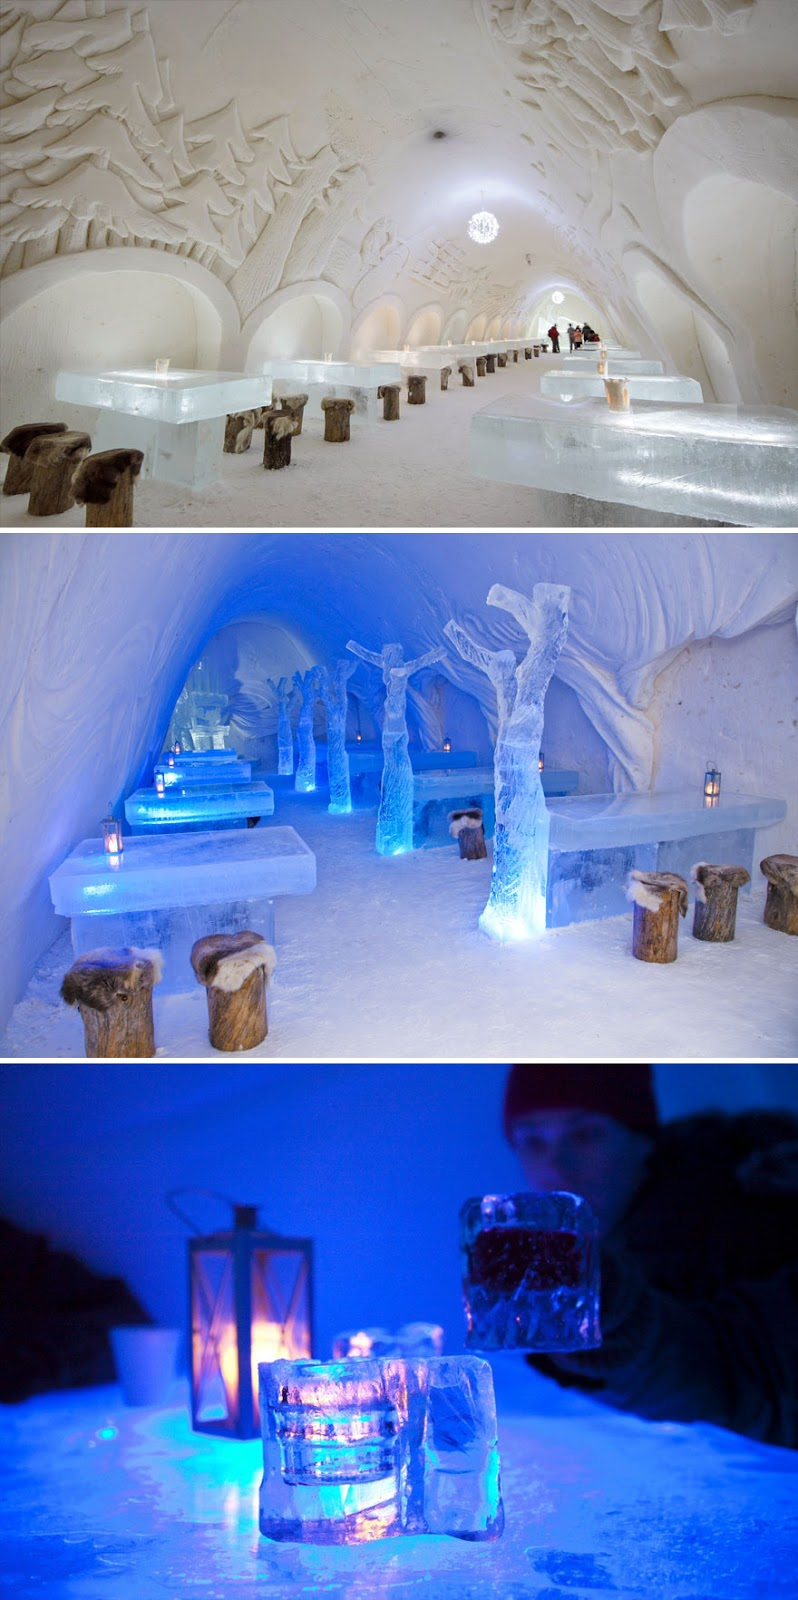 35 Of The World's Most Amazing Restaurants To Eat In Before You Die - Dine Surrounded By Snow And Ice, The Snowcastle Of Kemi, Kemi, Finland